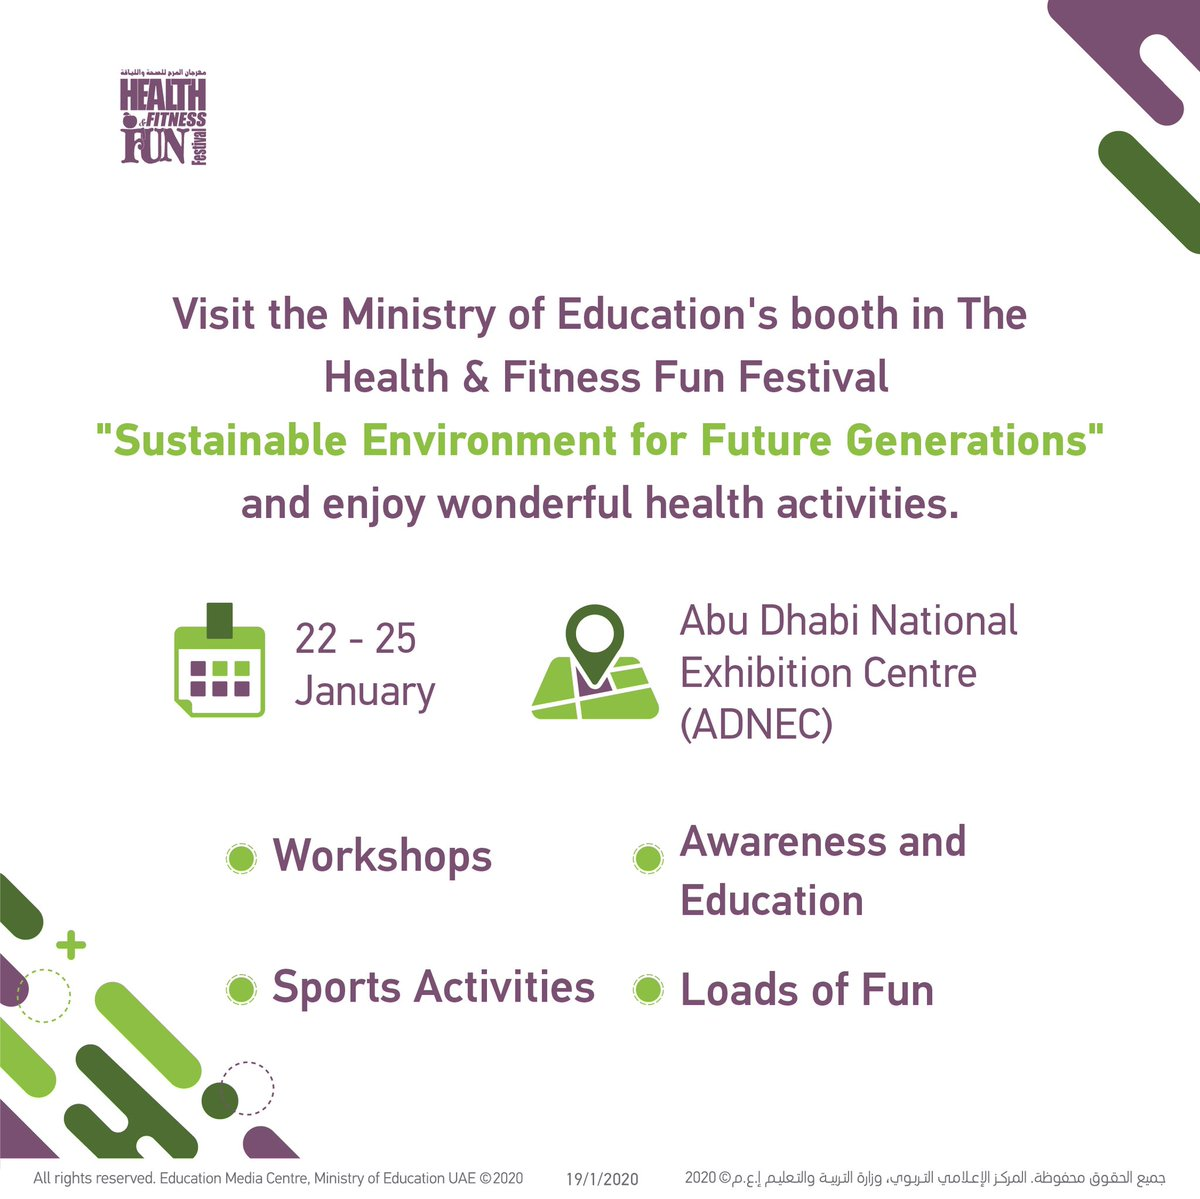 The Health & Fitness Fun Festival has returned! The festival activities will be held in the Abu Dhabi National Exhibition Centre (ADNEC) from 22-25 January 2020. Don't pass up the chance to participate in the exciting activities and events that await you! <br>http://pic.twitter.com/sLtsinpVL7